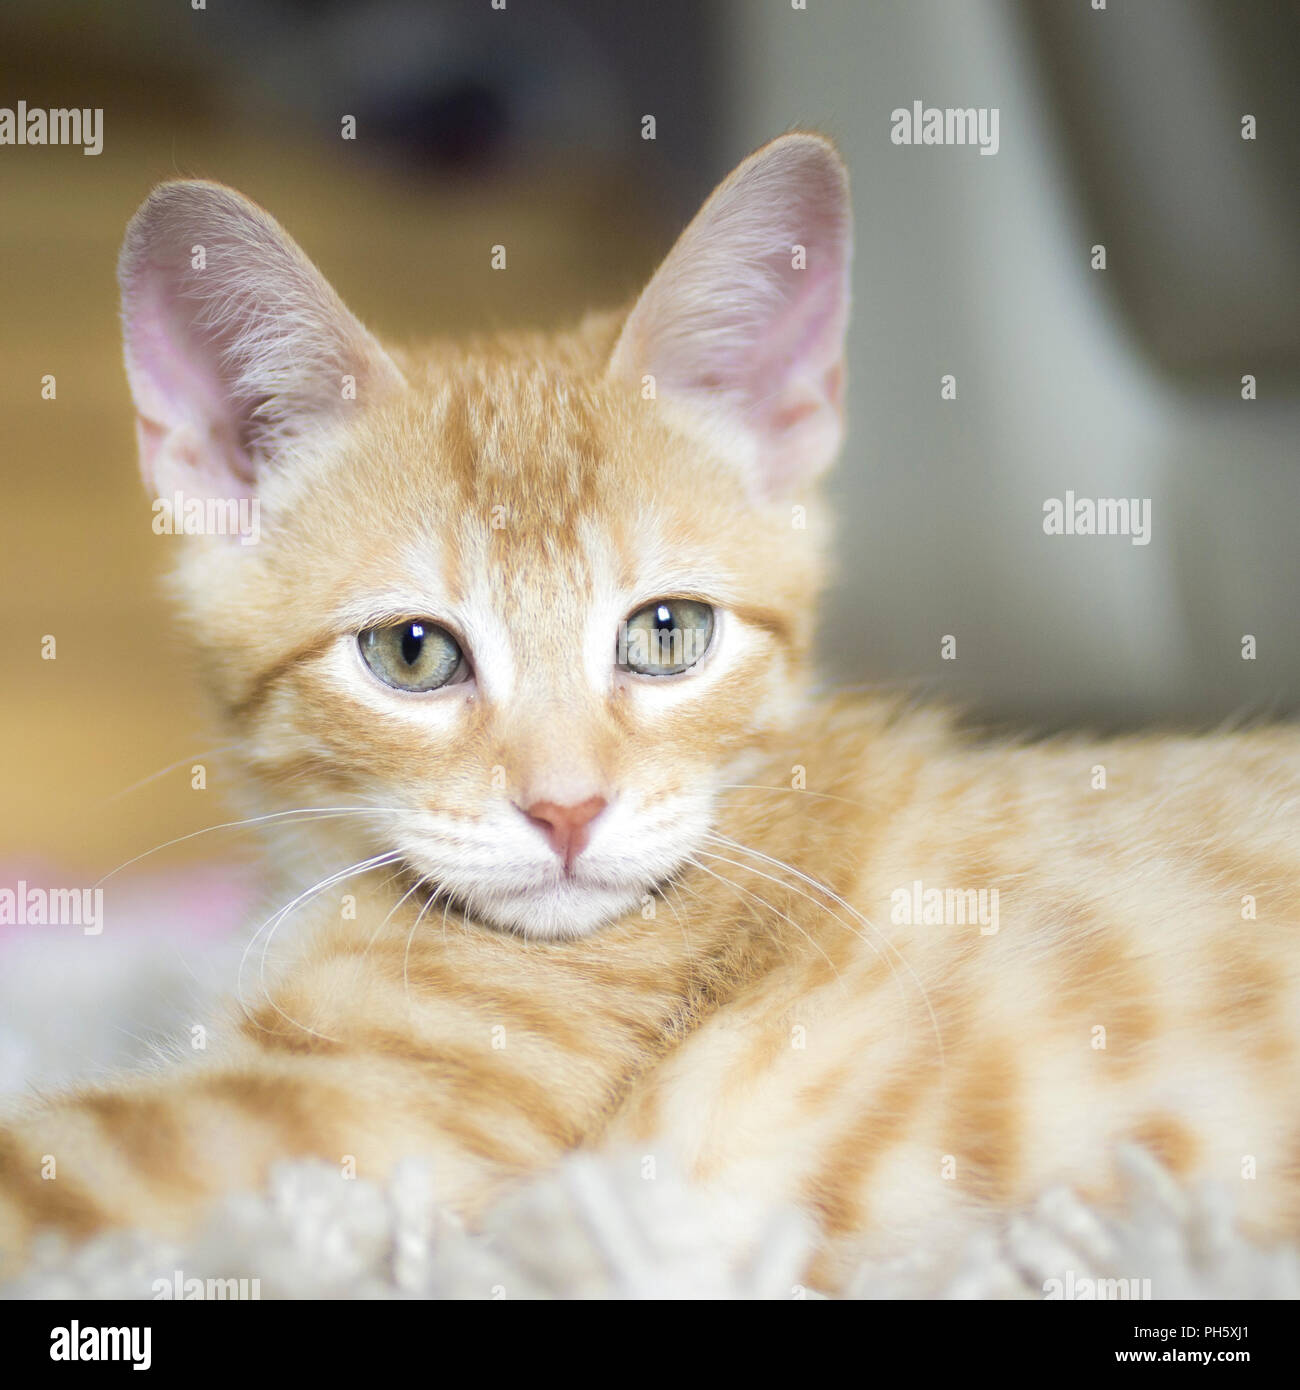 Red And White Kitten Looking At The Camera Super Cute Cat Baby